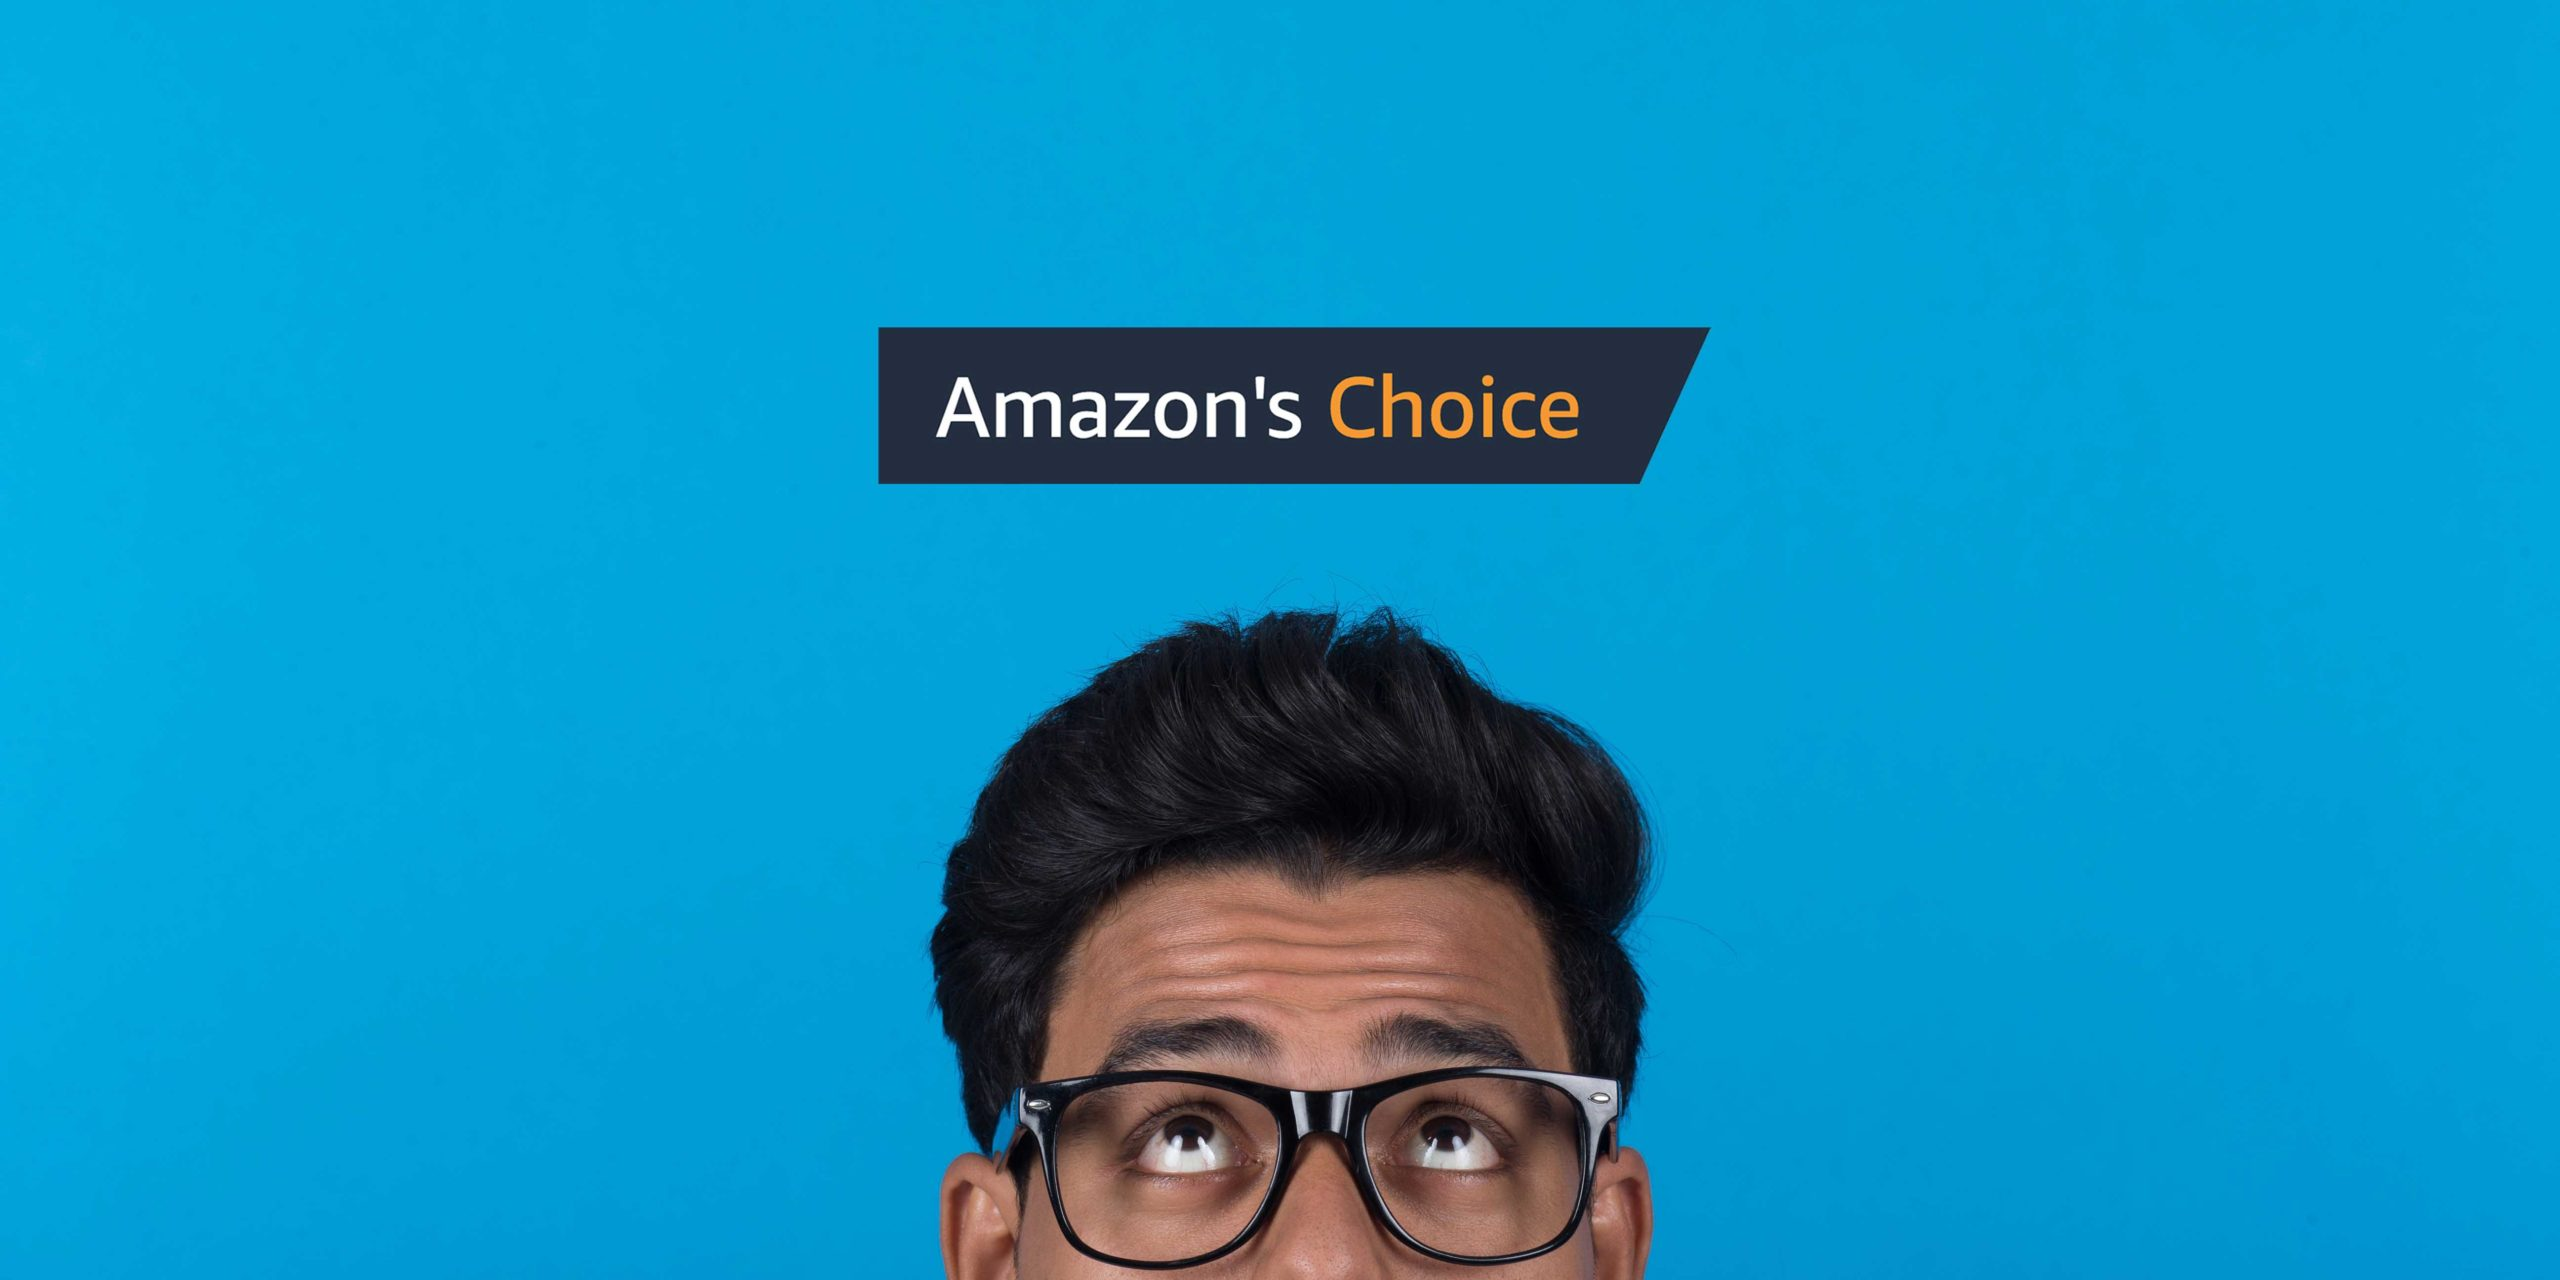 Man looking up at Amazon's Choice badge